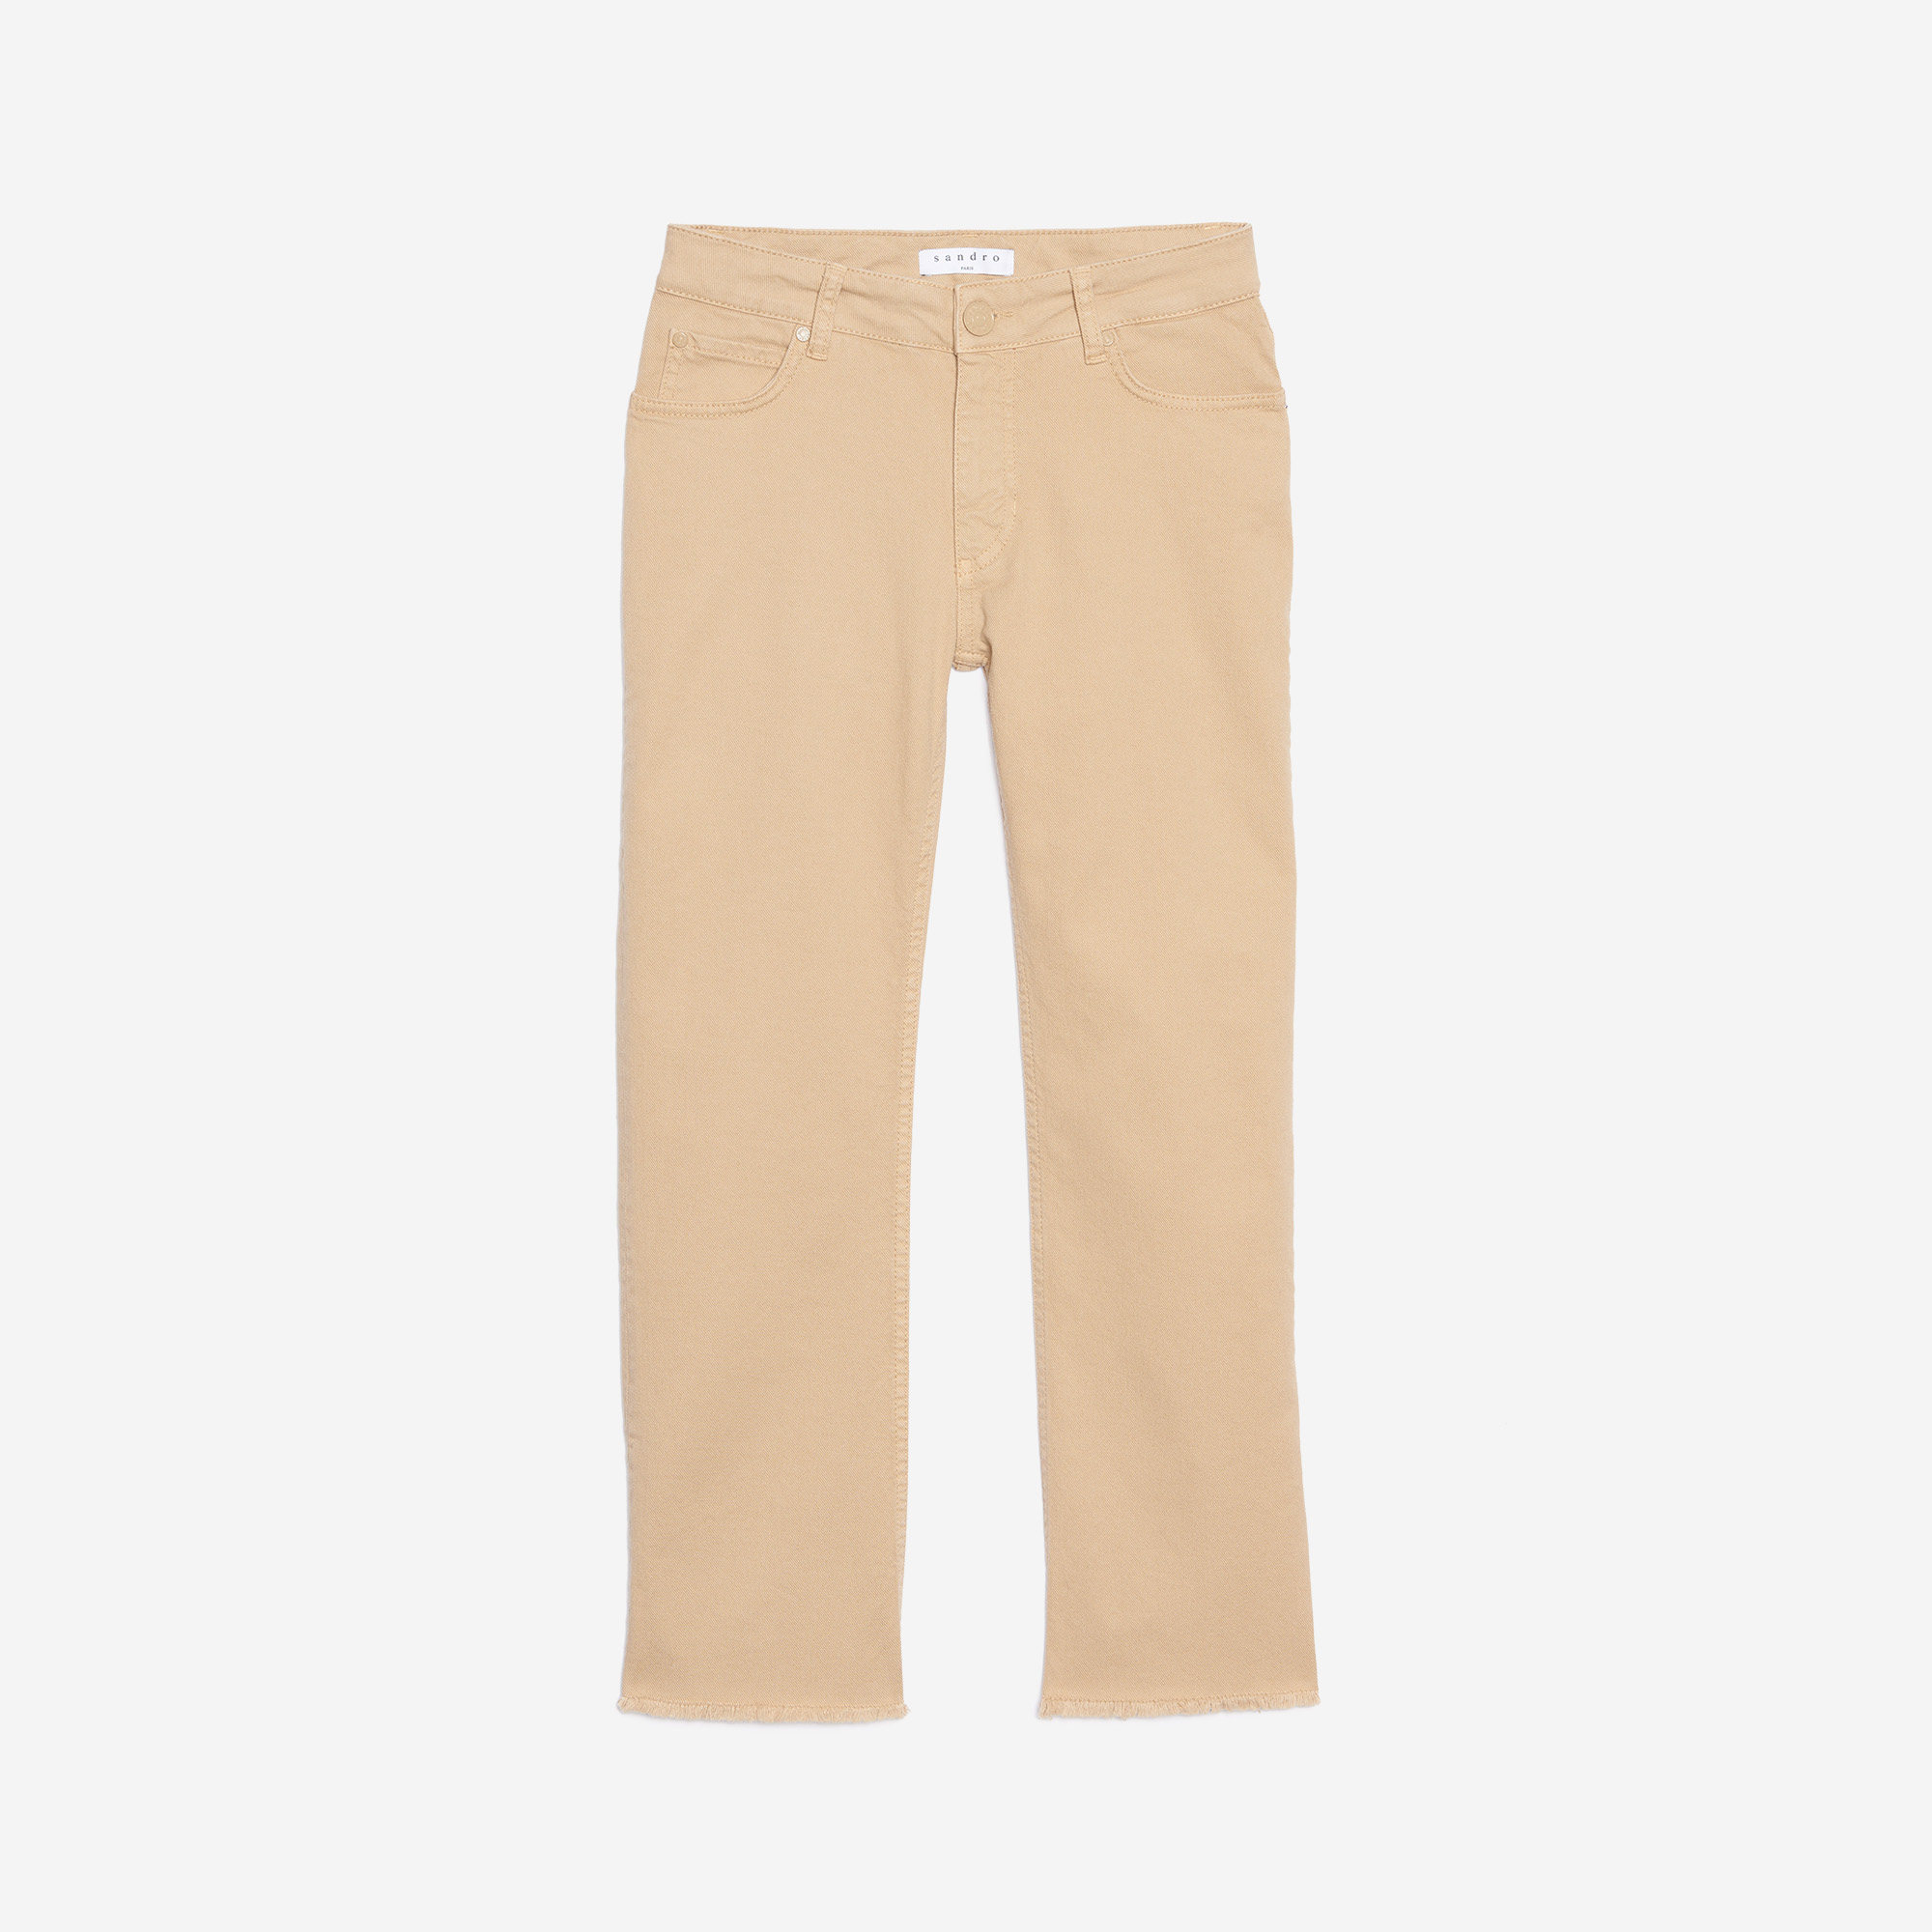 ad71382b58 Straight Cut, Regular-Waisted Jeans : Warehouse Sale color Sand